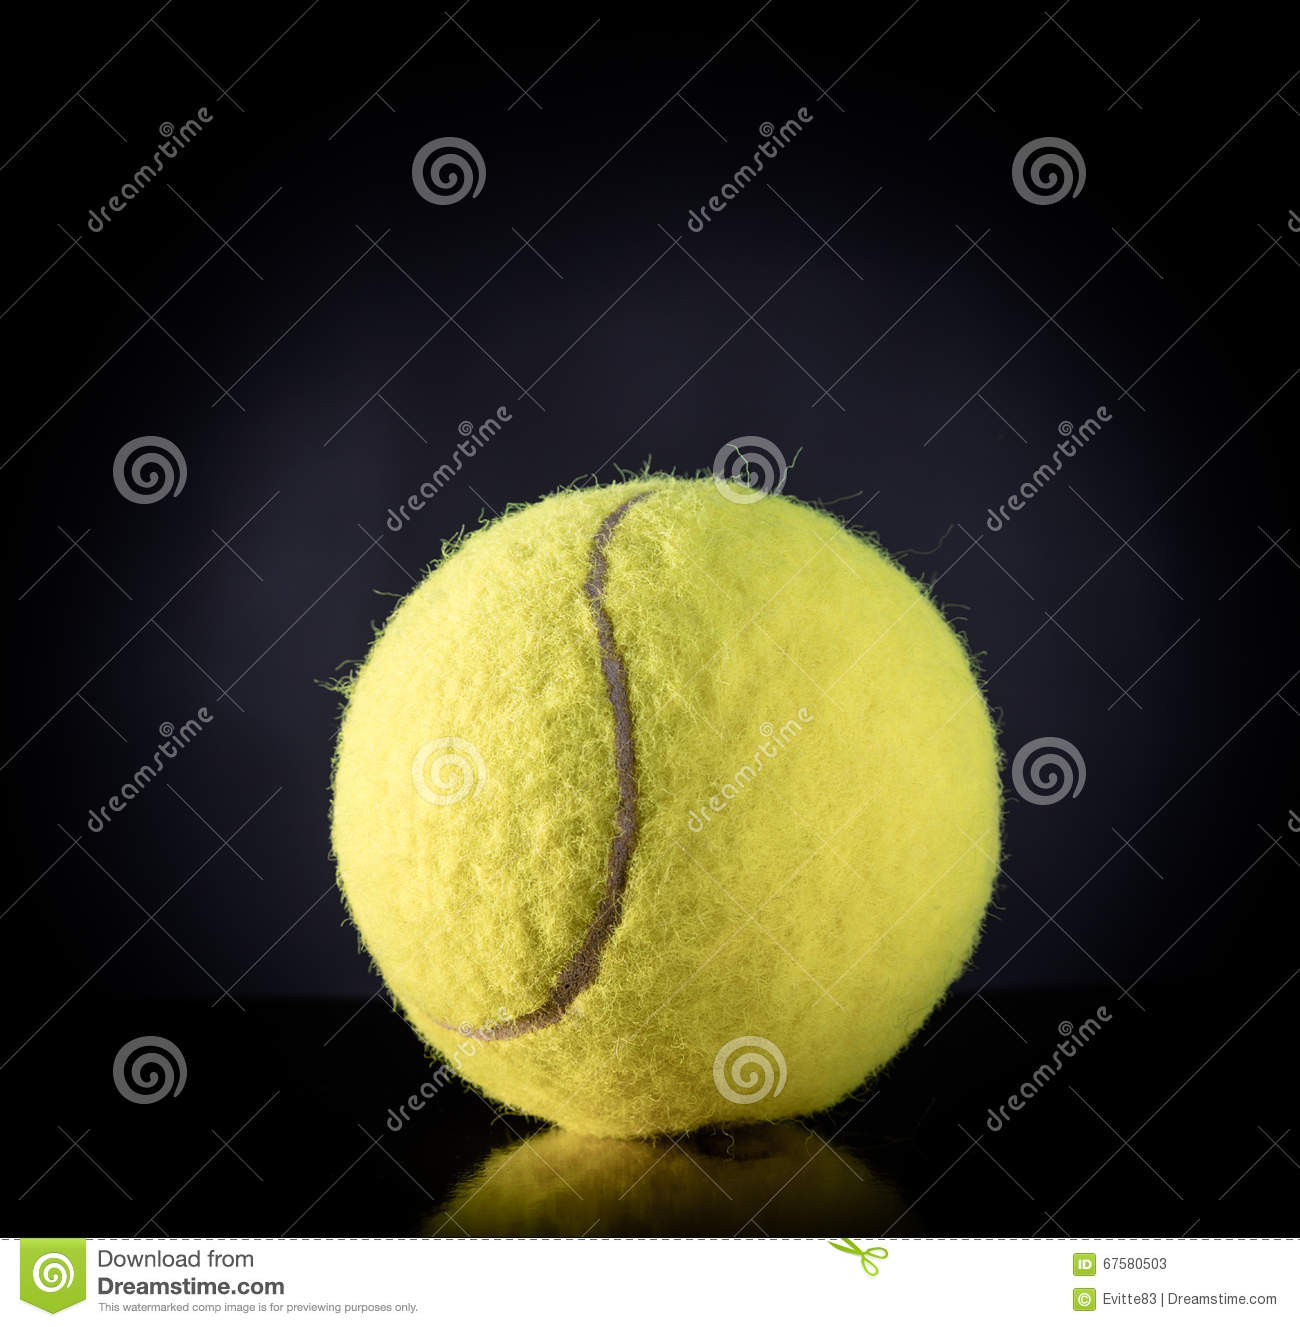 Tennis Ball On Black With Dramatic Lighting Stock Illustration